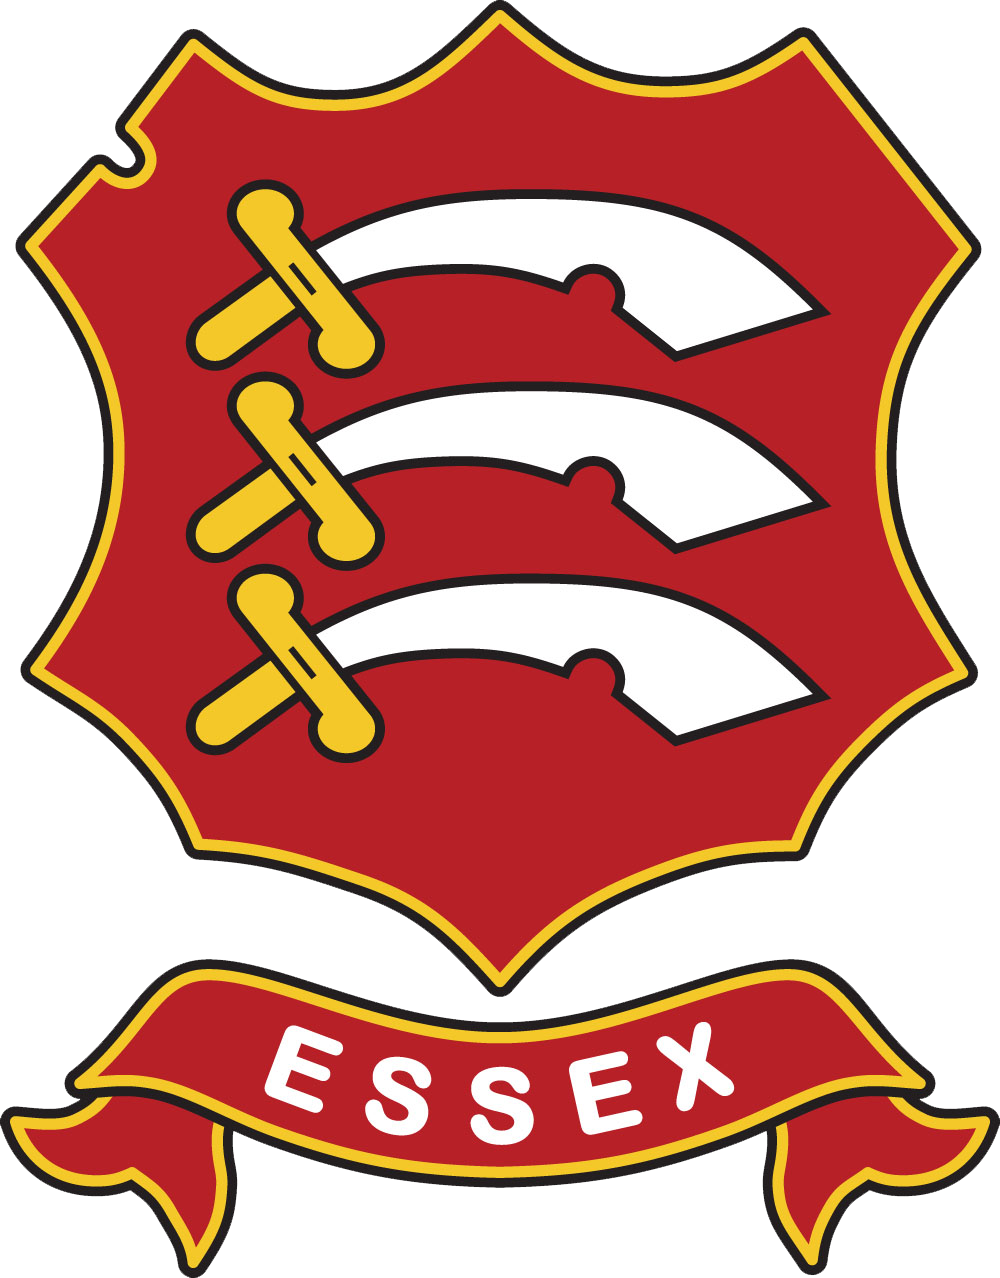 Essex Cricket Club